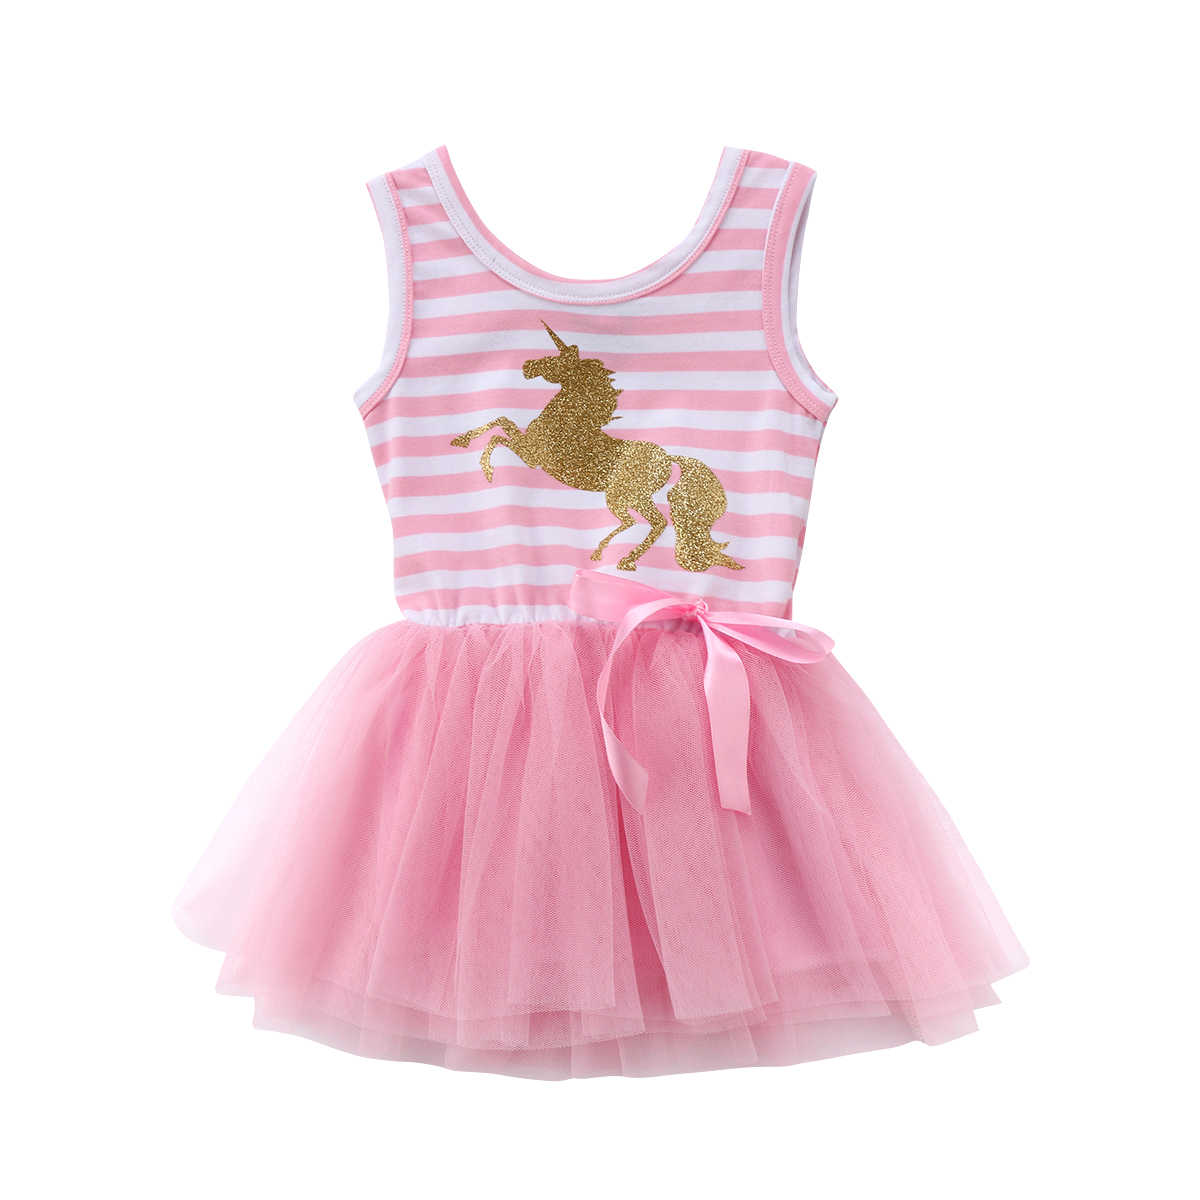 Unicorn Baby Girls Princess Dresses Striped Sleeveless Party Wedding Tutu Tulle Dresses Baby Clothes